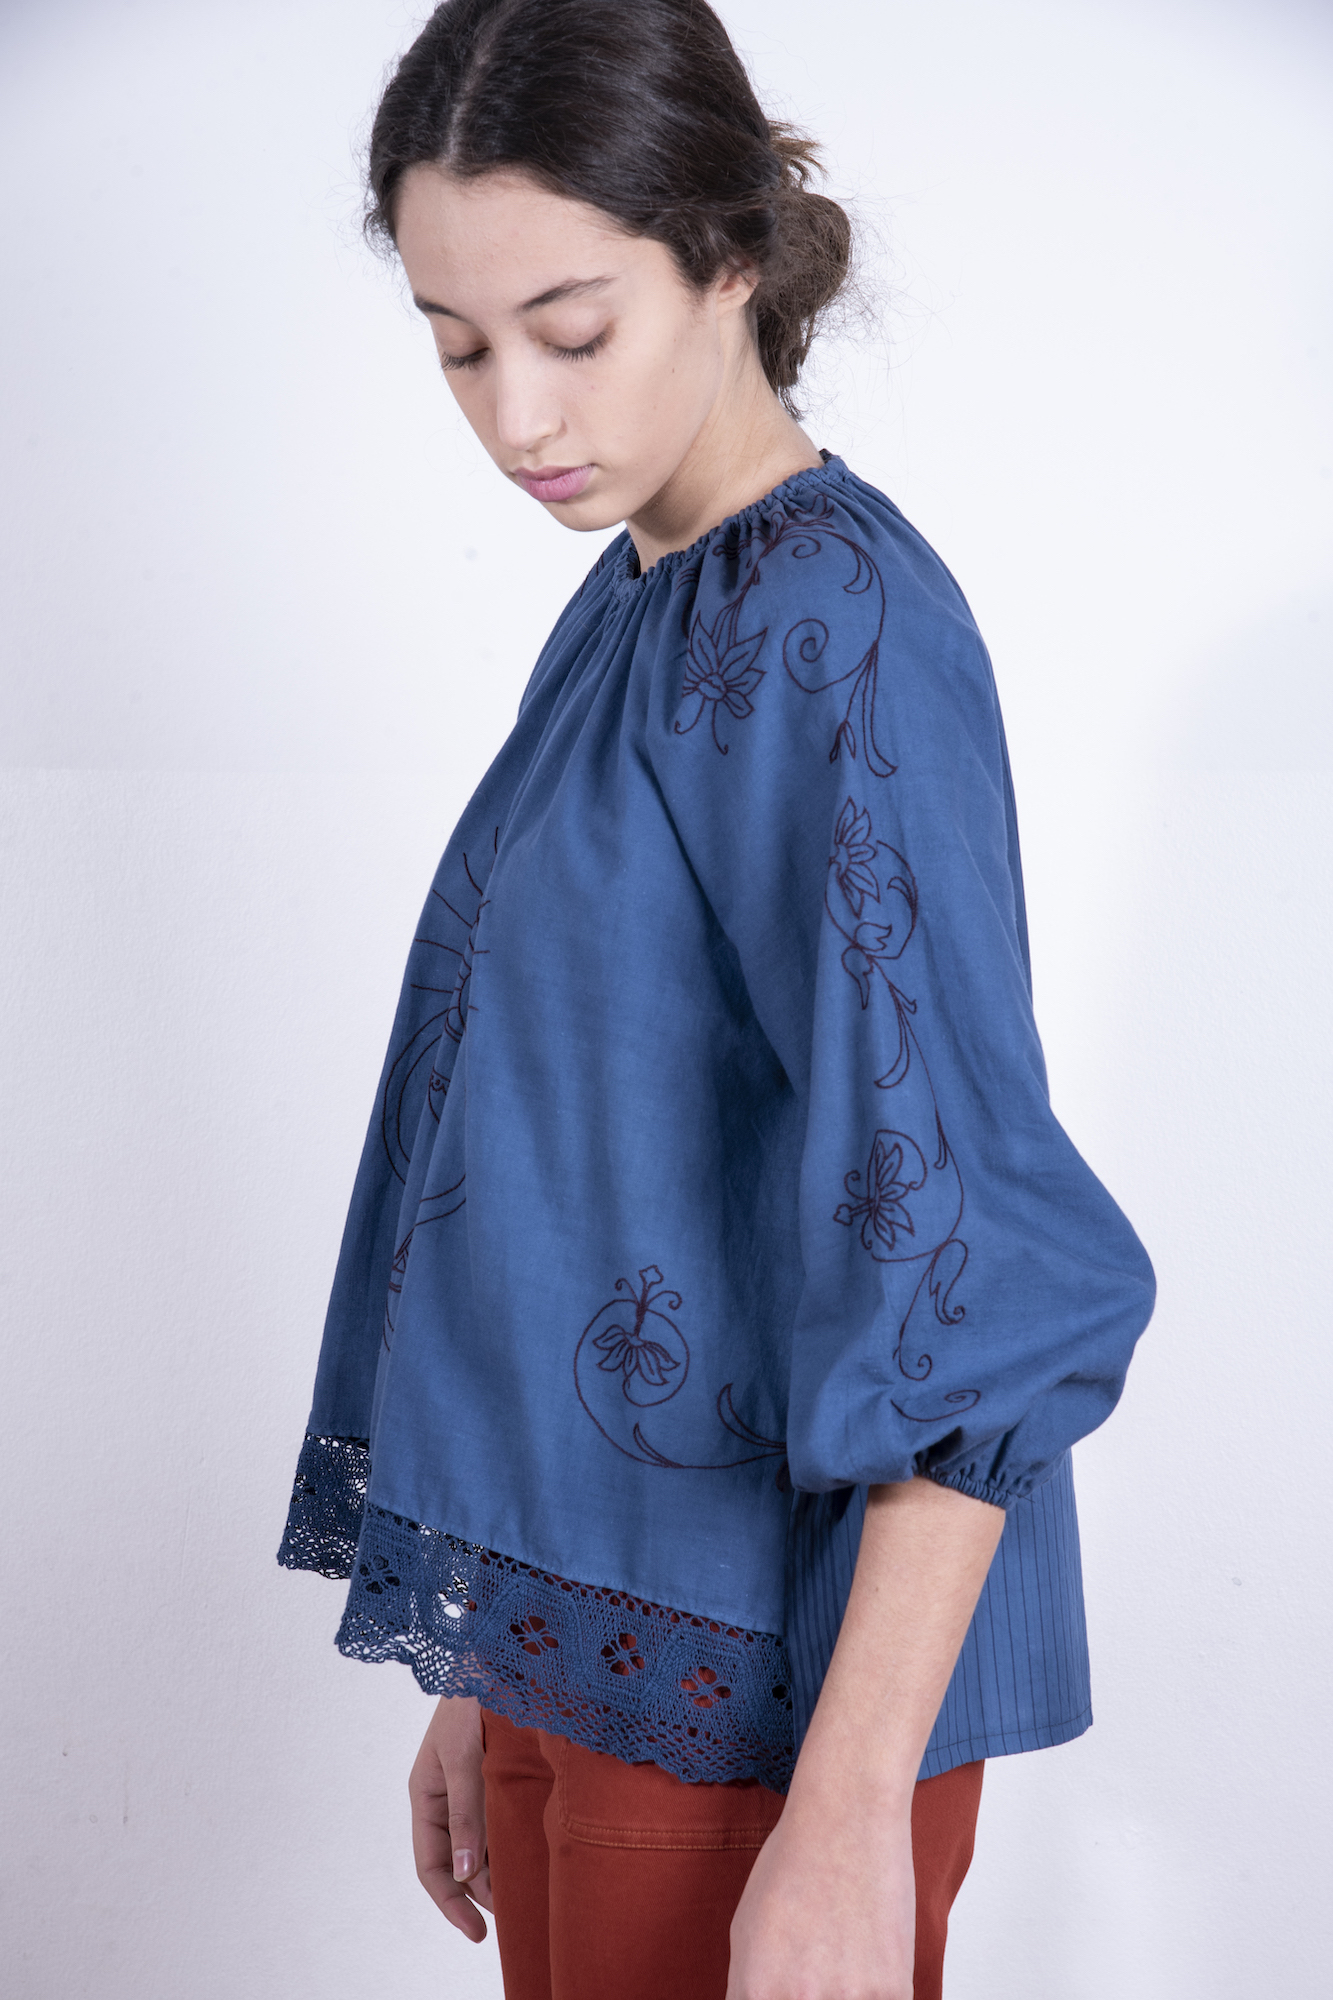 Blue blouse with ecclesiastical embroidery